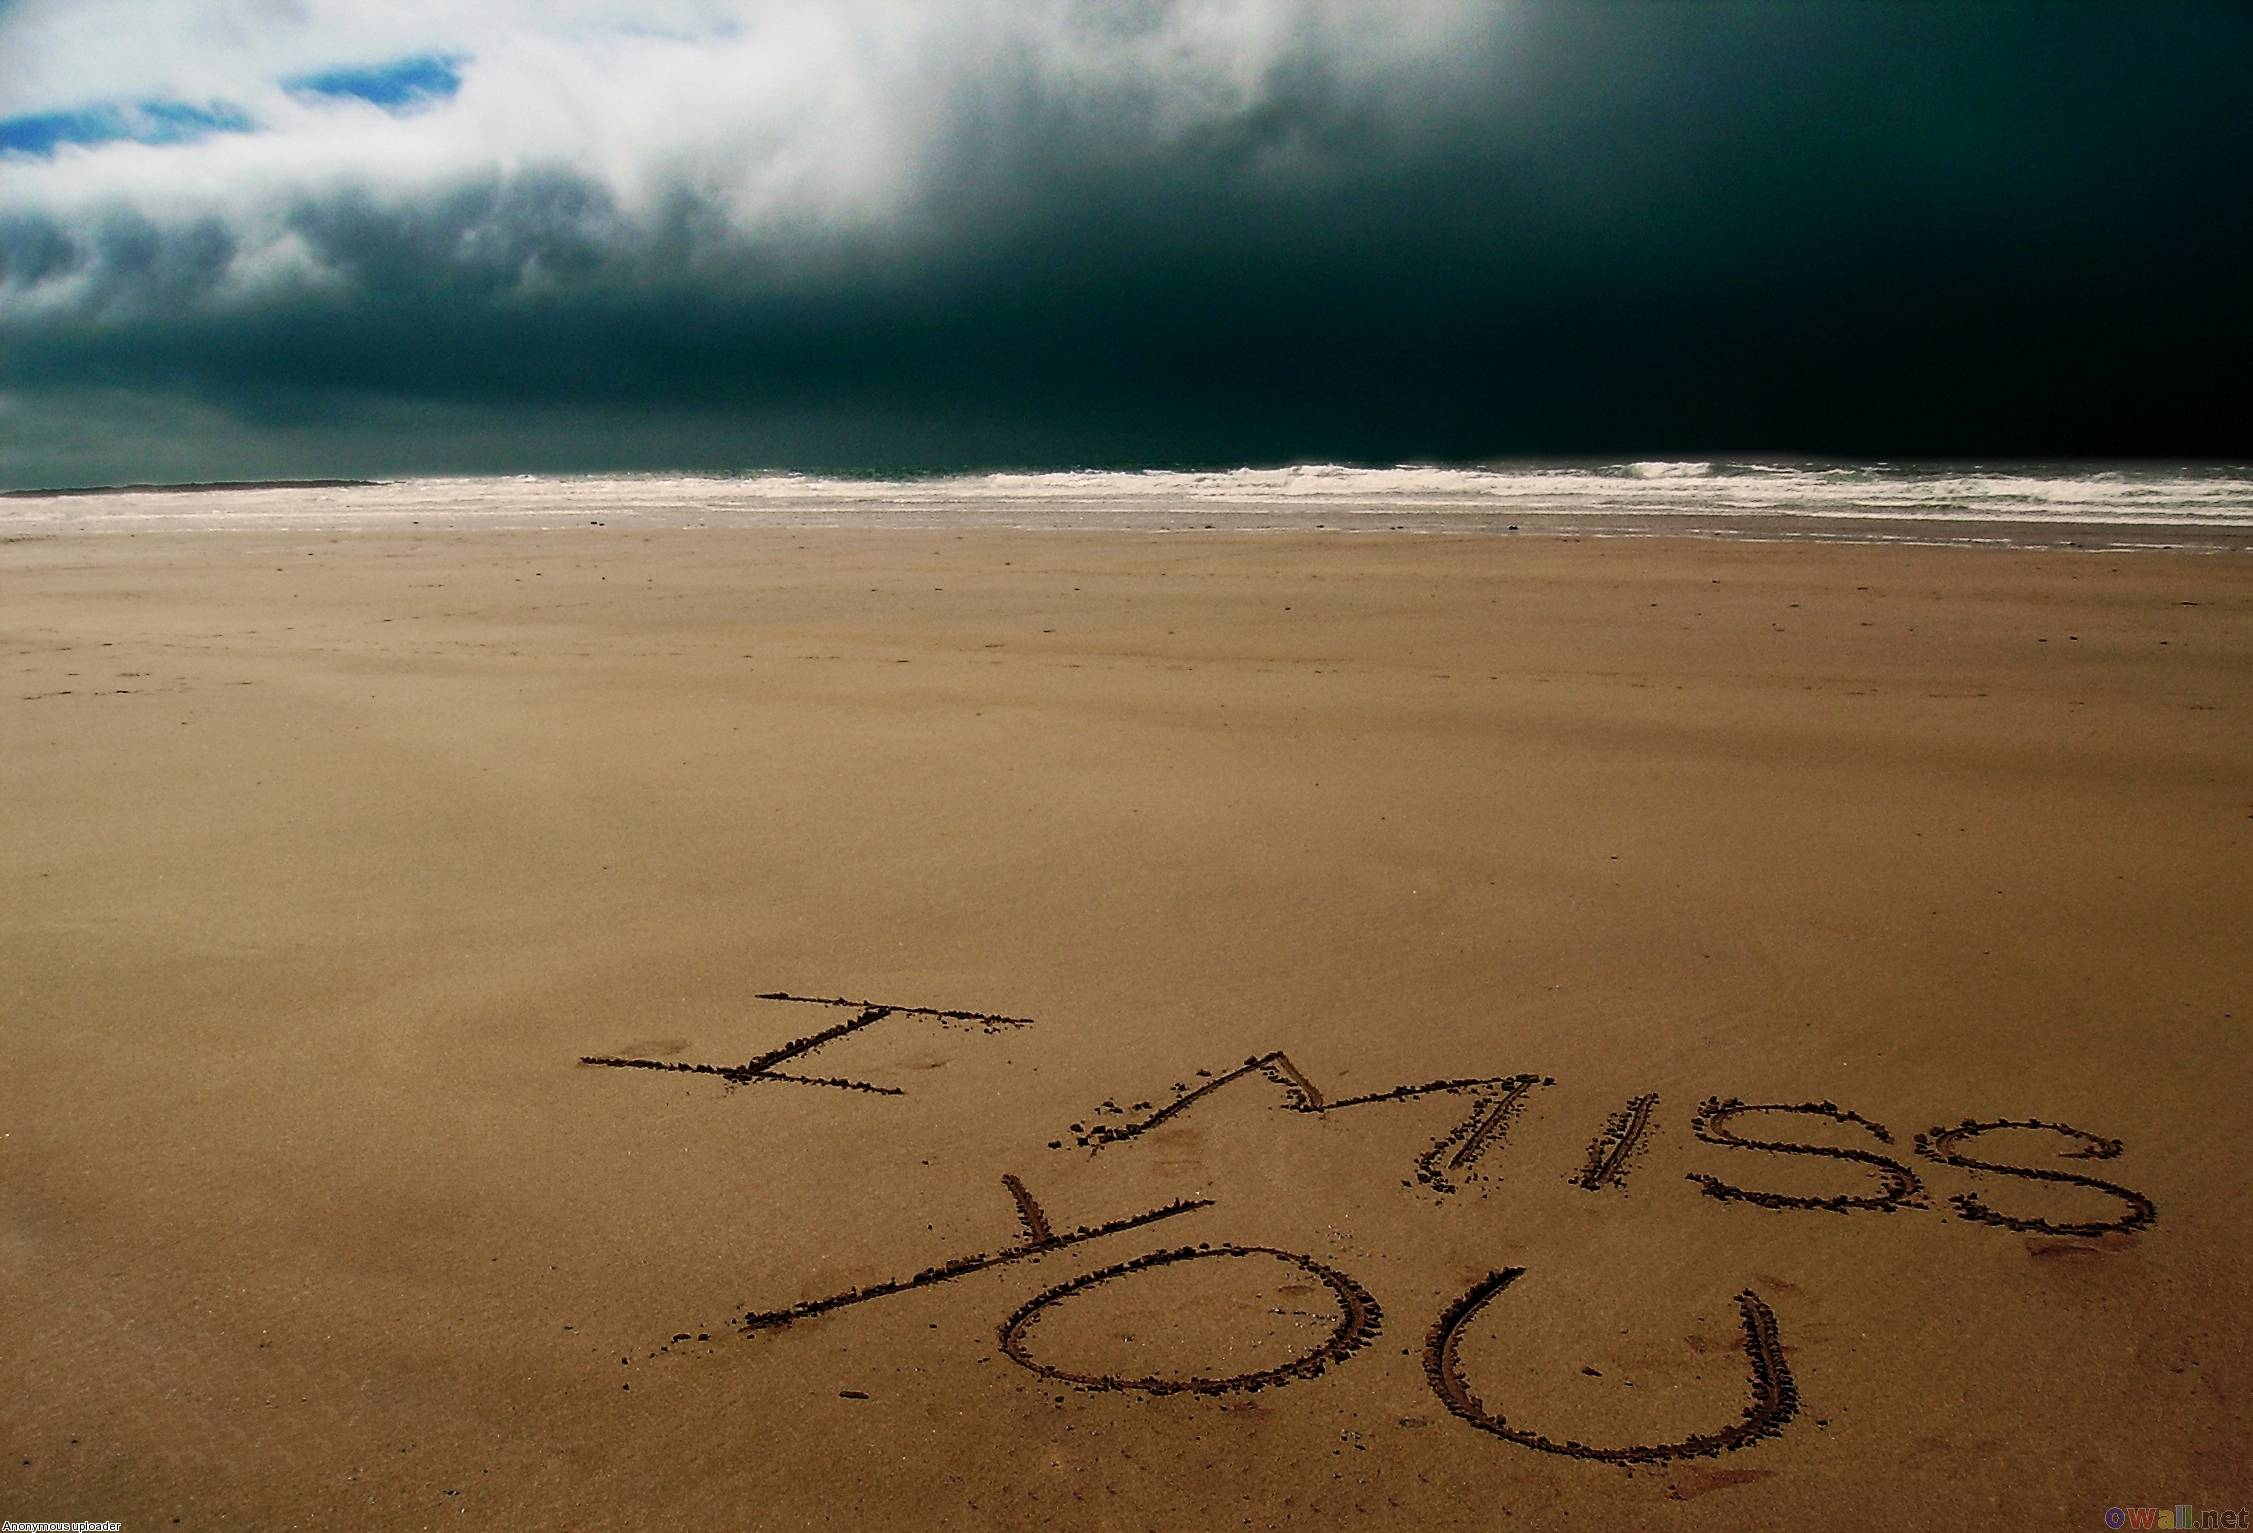 Wallpaper download i miss you - I Miss You Wallpapers 22273 Hd Wallpapers In Love N Romance